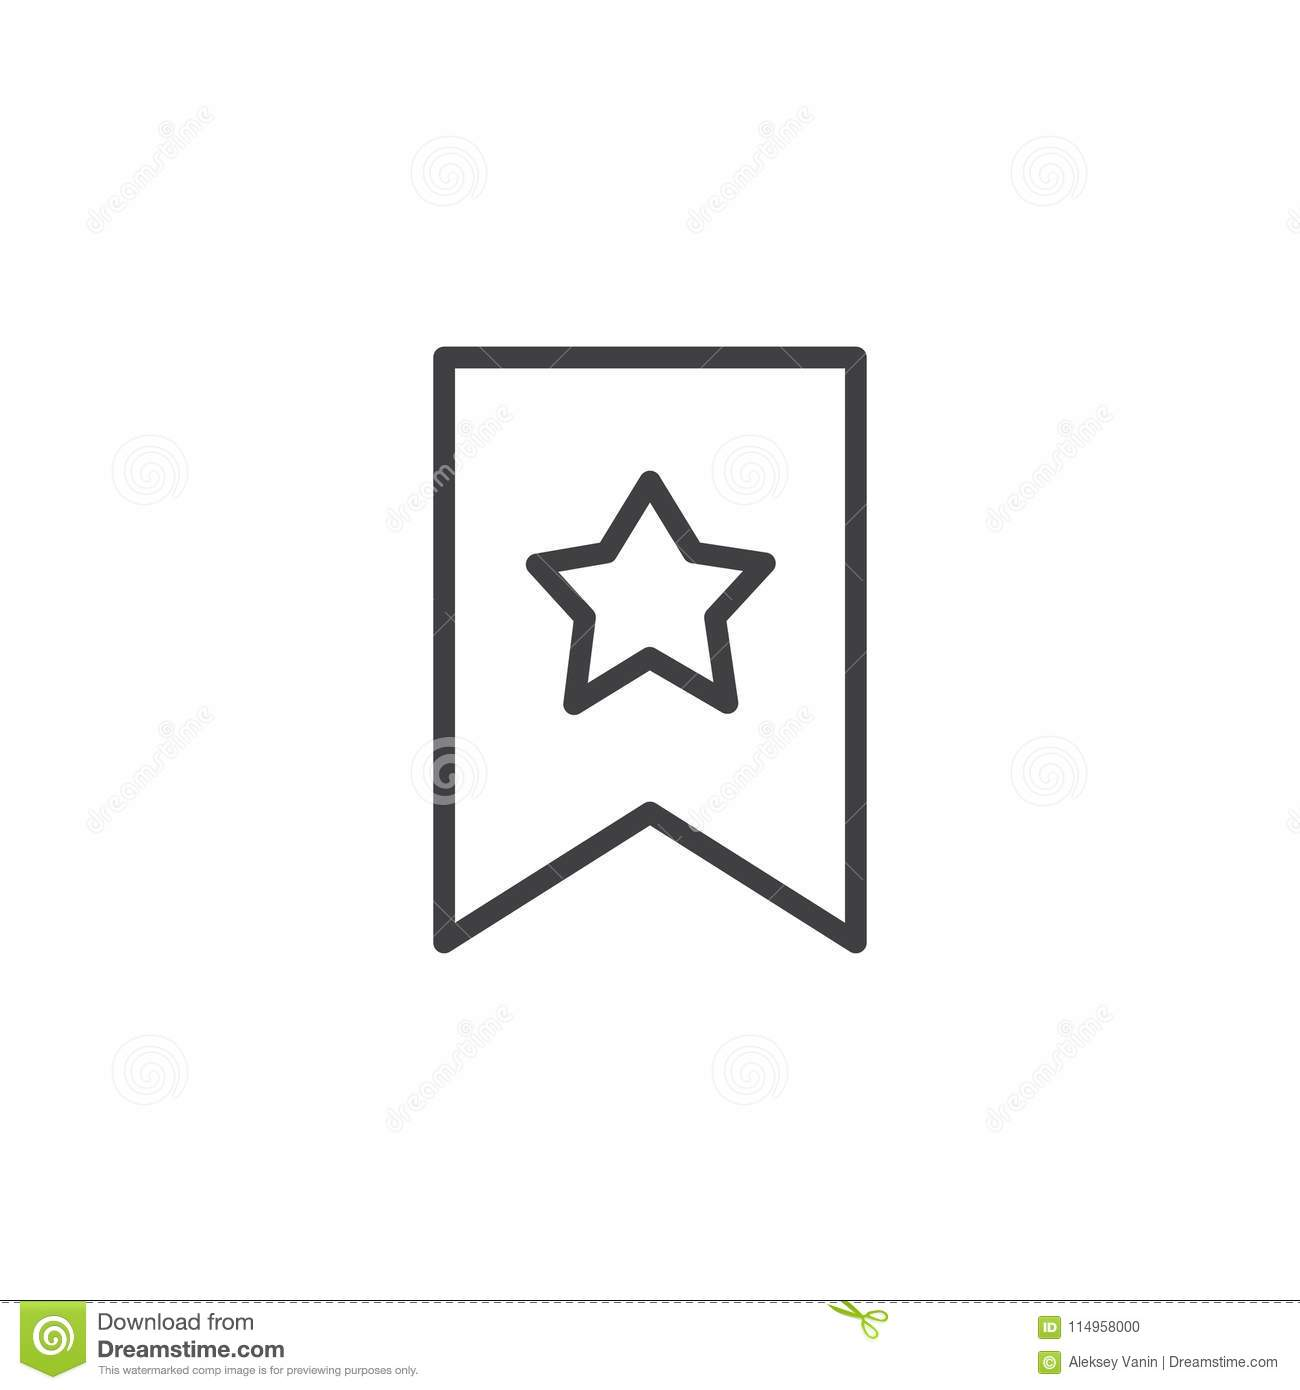 Bookmark With Star Outline Icon Stock Vector - Illustration